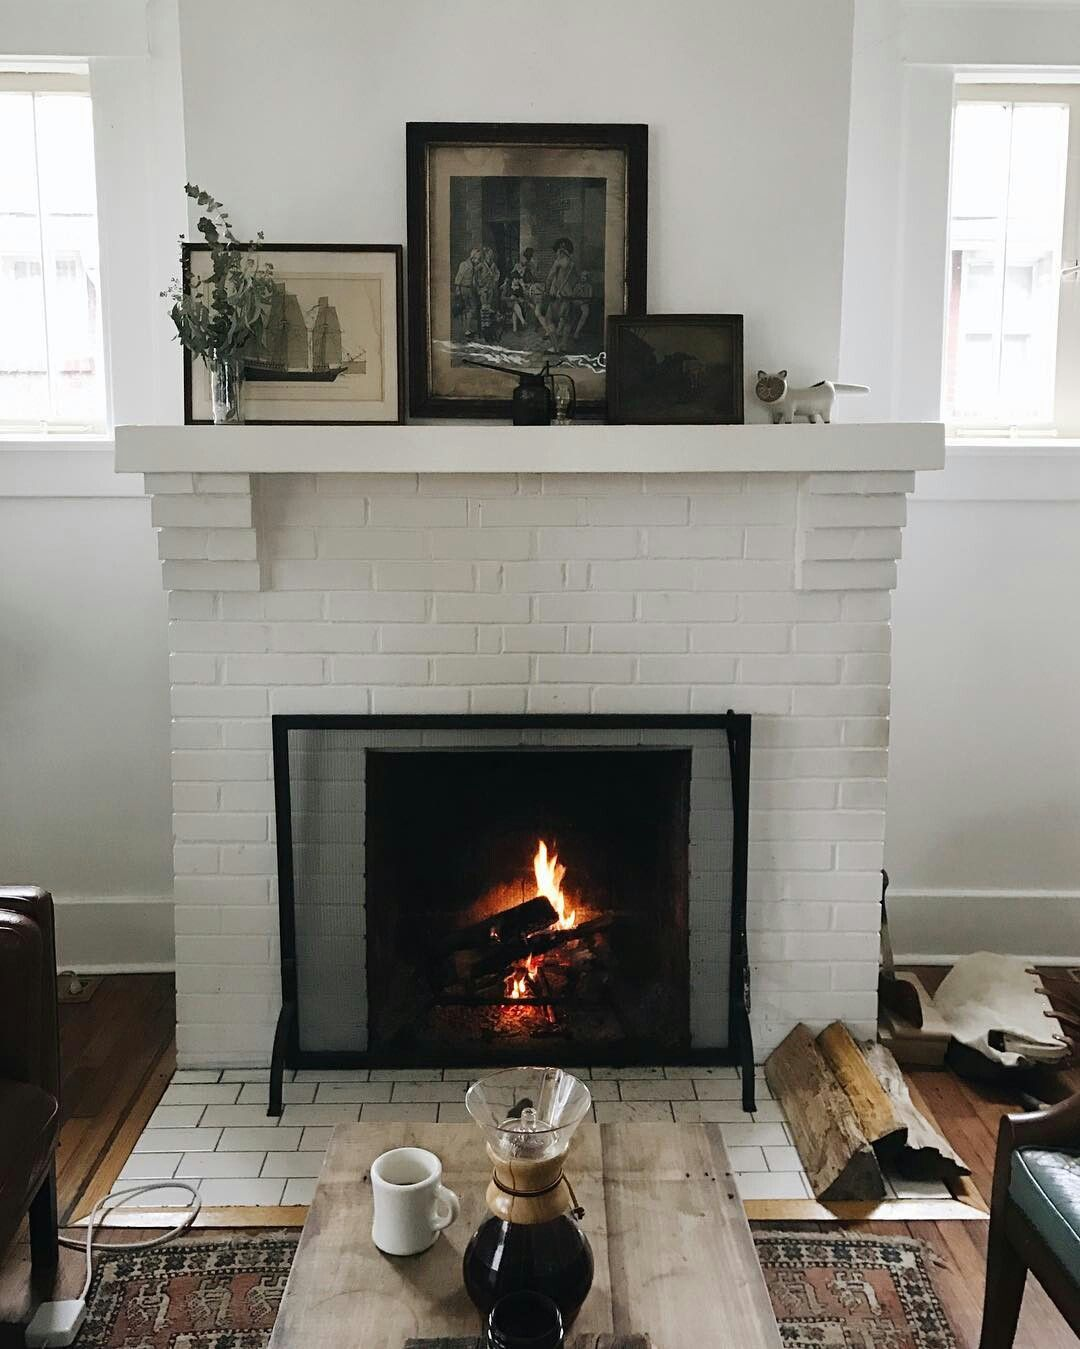 Pin By Elyy On Decor Home Home Decor Painted Brick Fireplaces